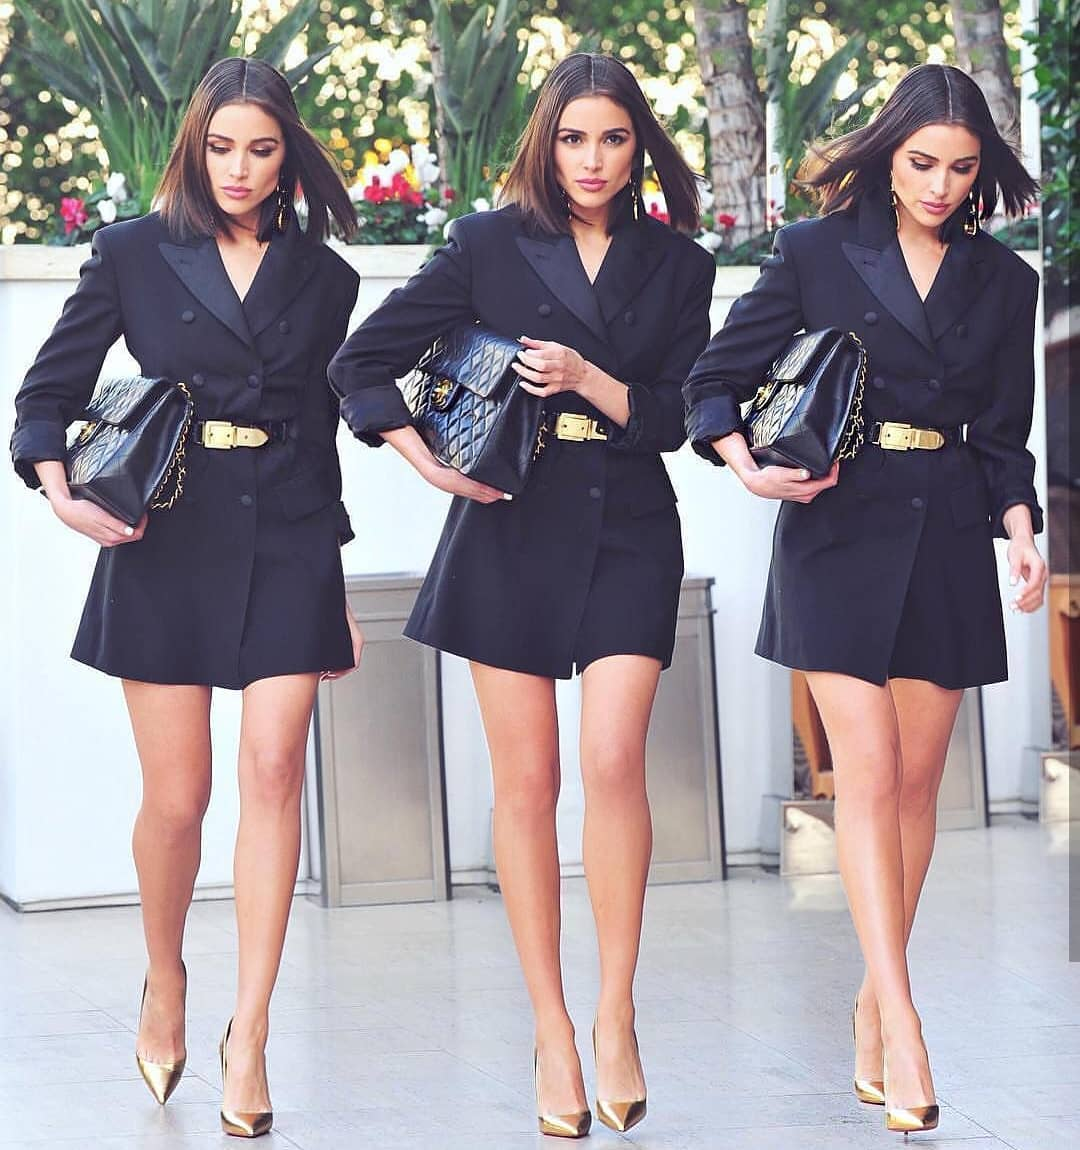 Belted Double Breasted Blazer Dress In Black For Summer In London 2019